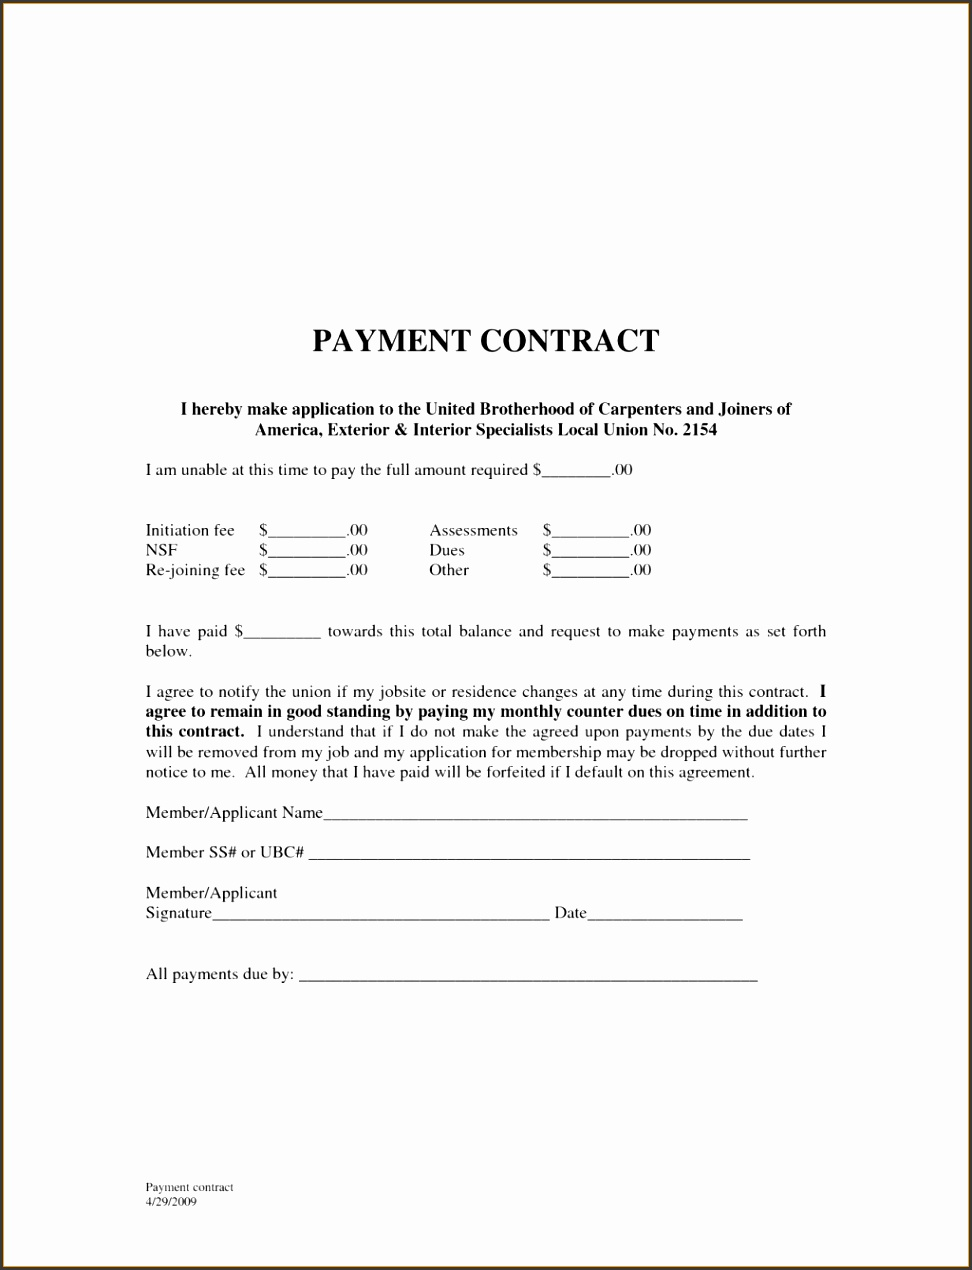 Payment Agreement Template Loan Settlement Letter For Car Accident Hire